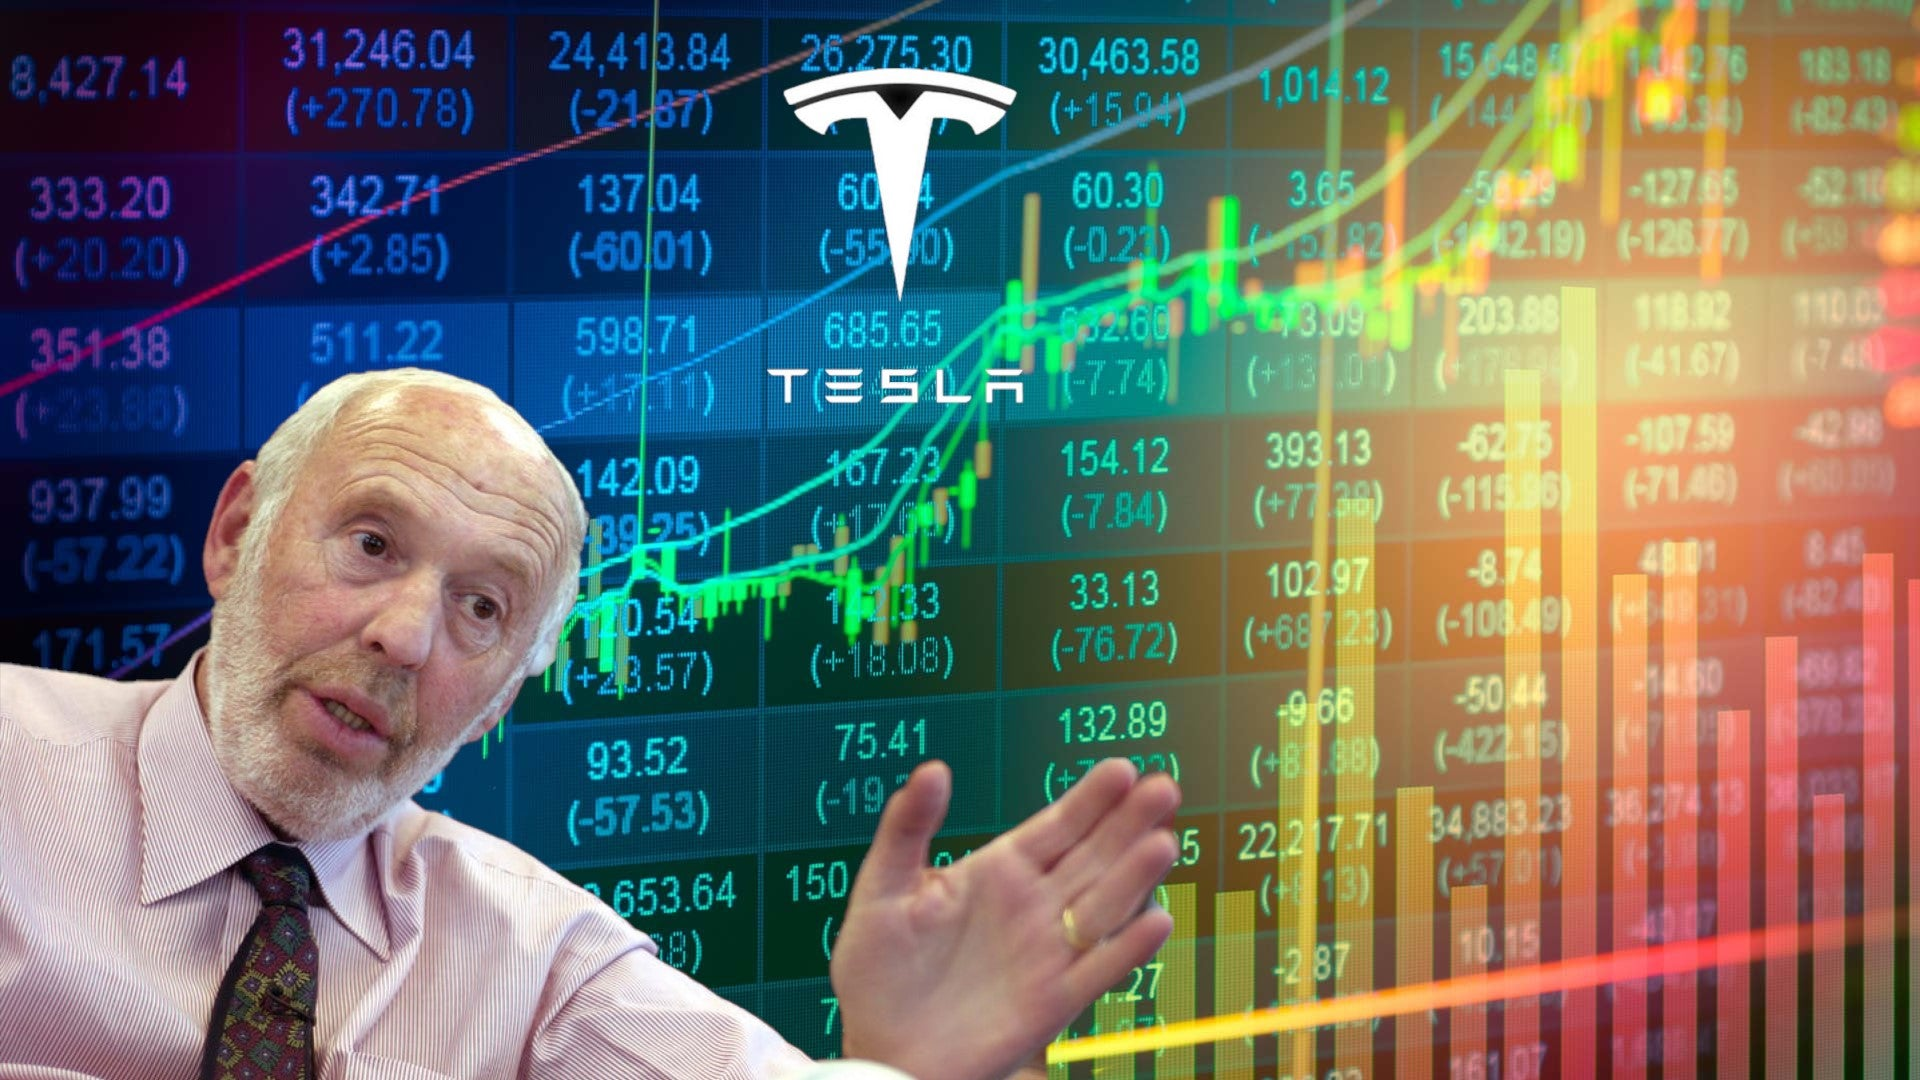 3.3M of TSLA Tesla Shares Added by Legendary Hedge Fund